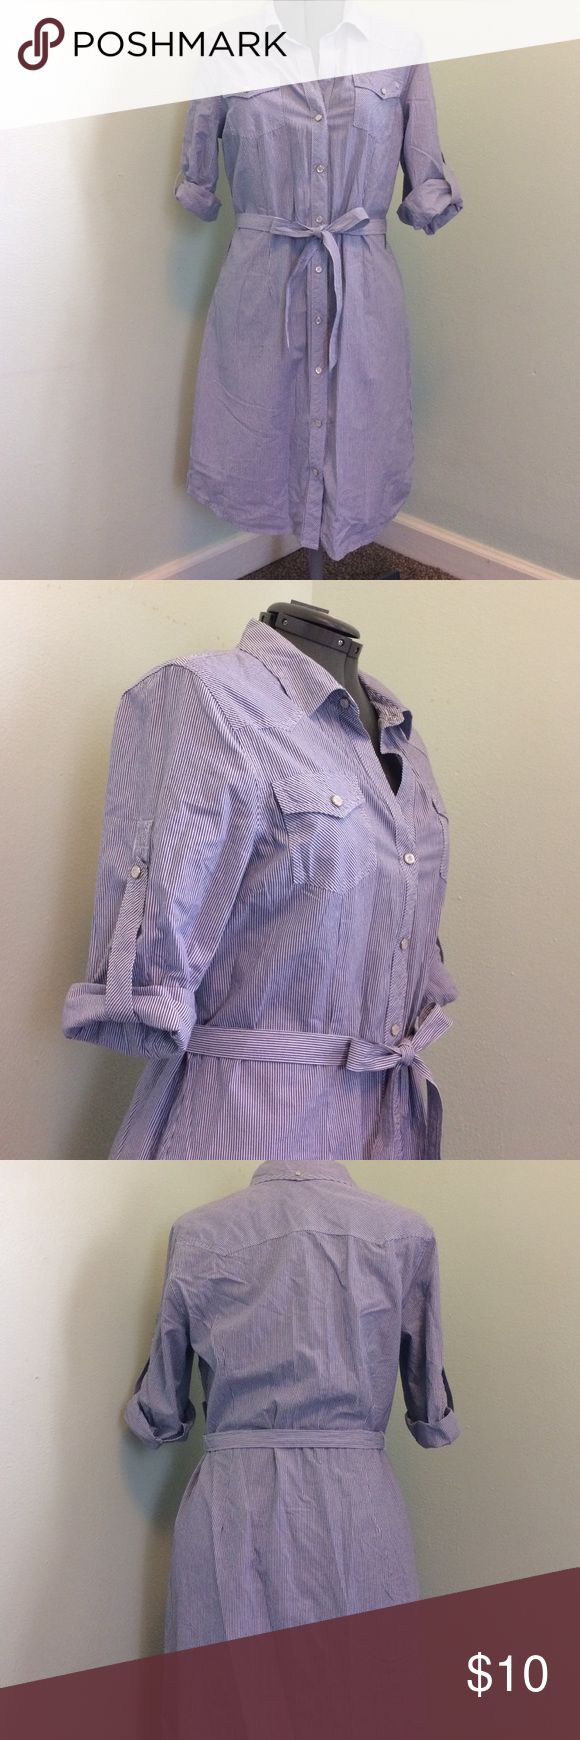 NWT Blue and white striped shirt dress New with tags blue and white shirt dress. Button front with adjustable sleeves. Tommy Hilfiger Dresses Midi